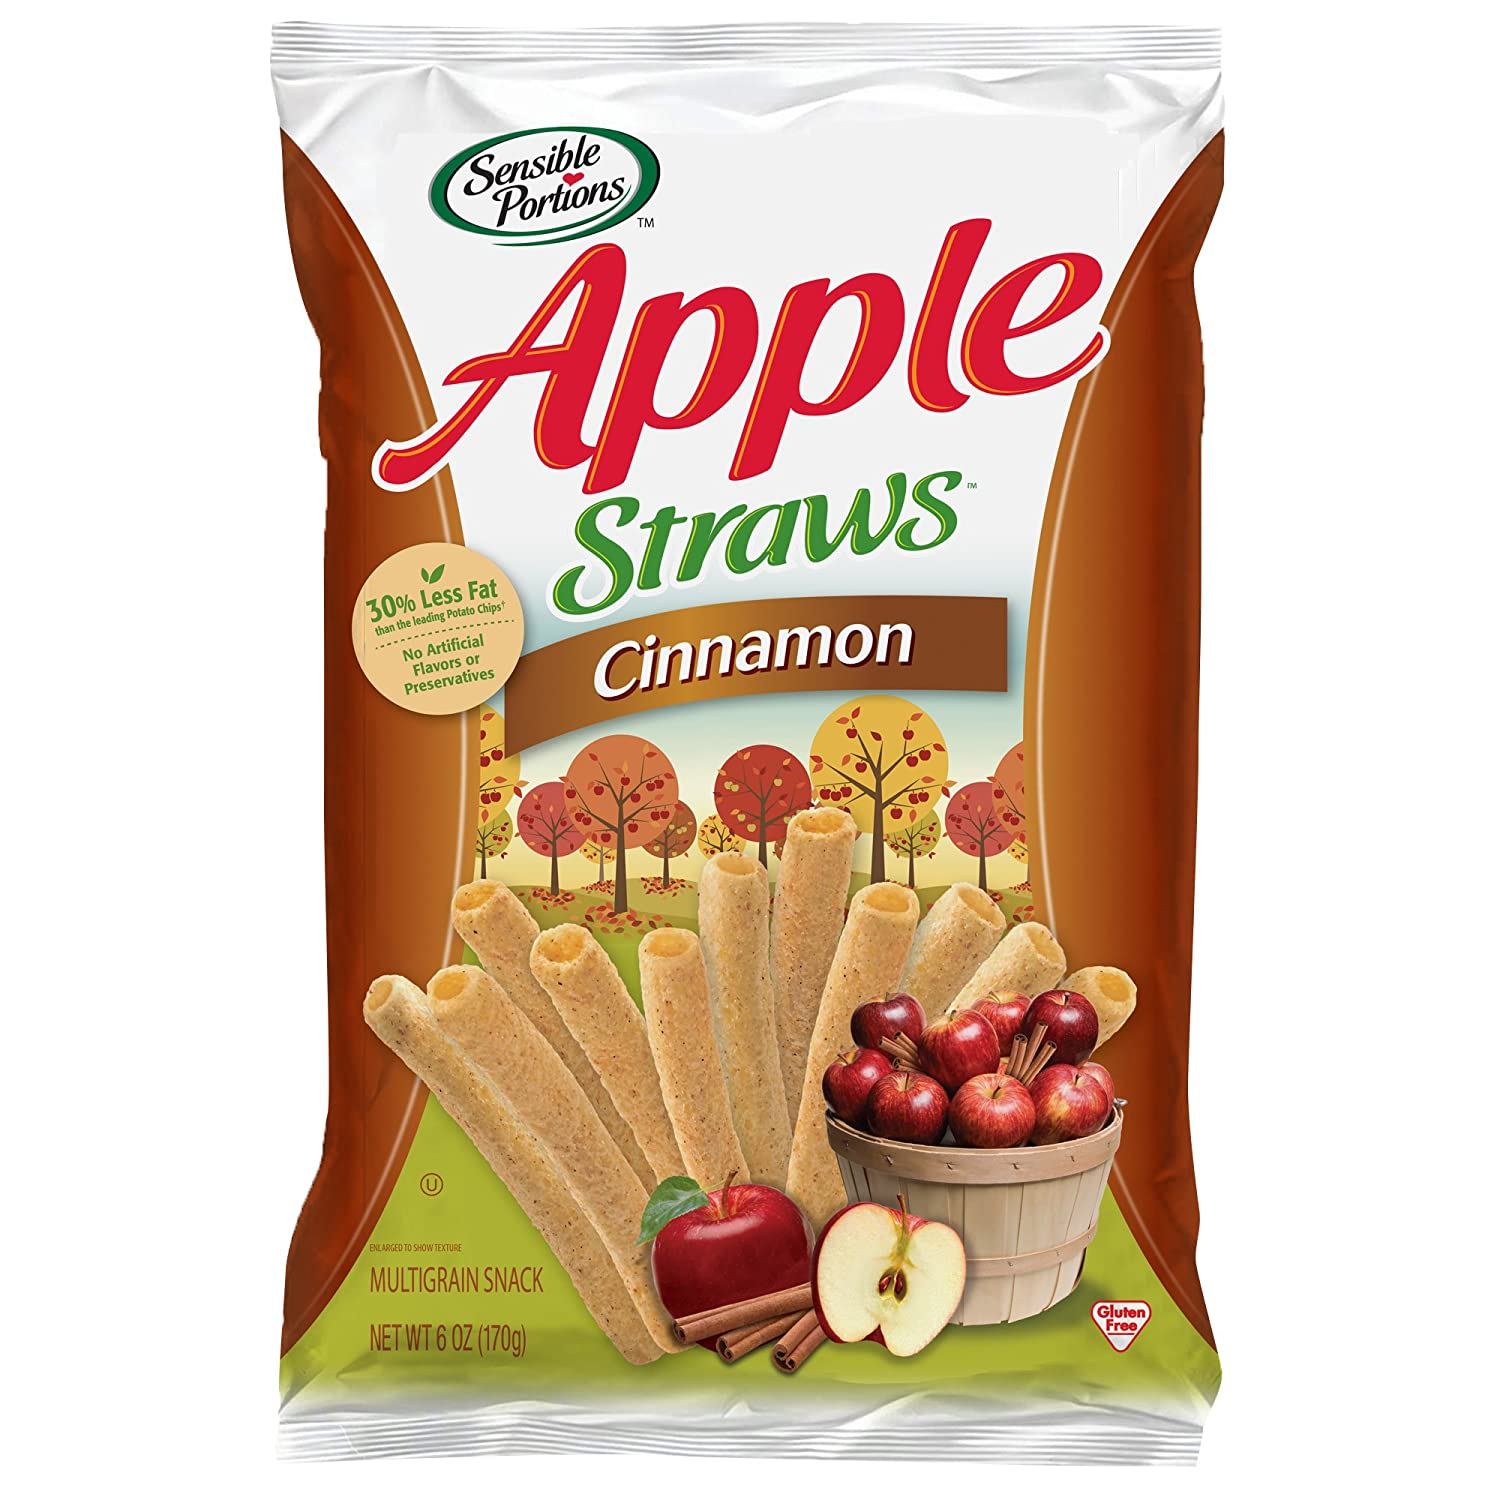 Sensible Portions Apple Straws, Cinnamon, 6 oz.